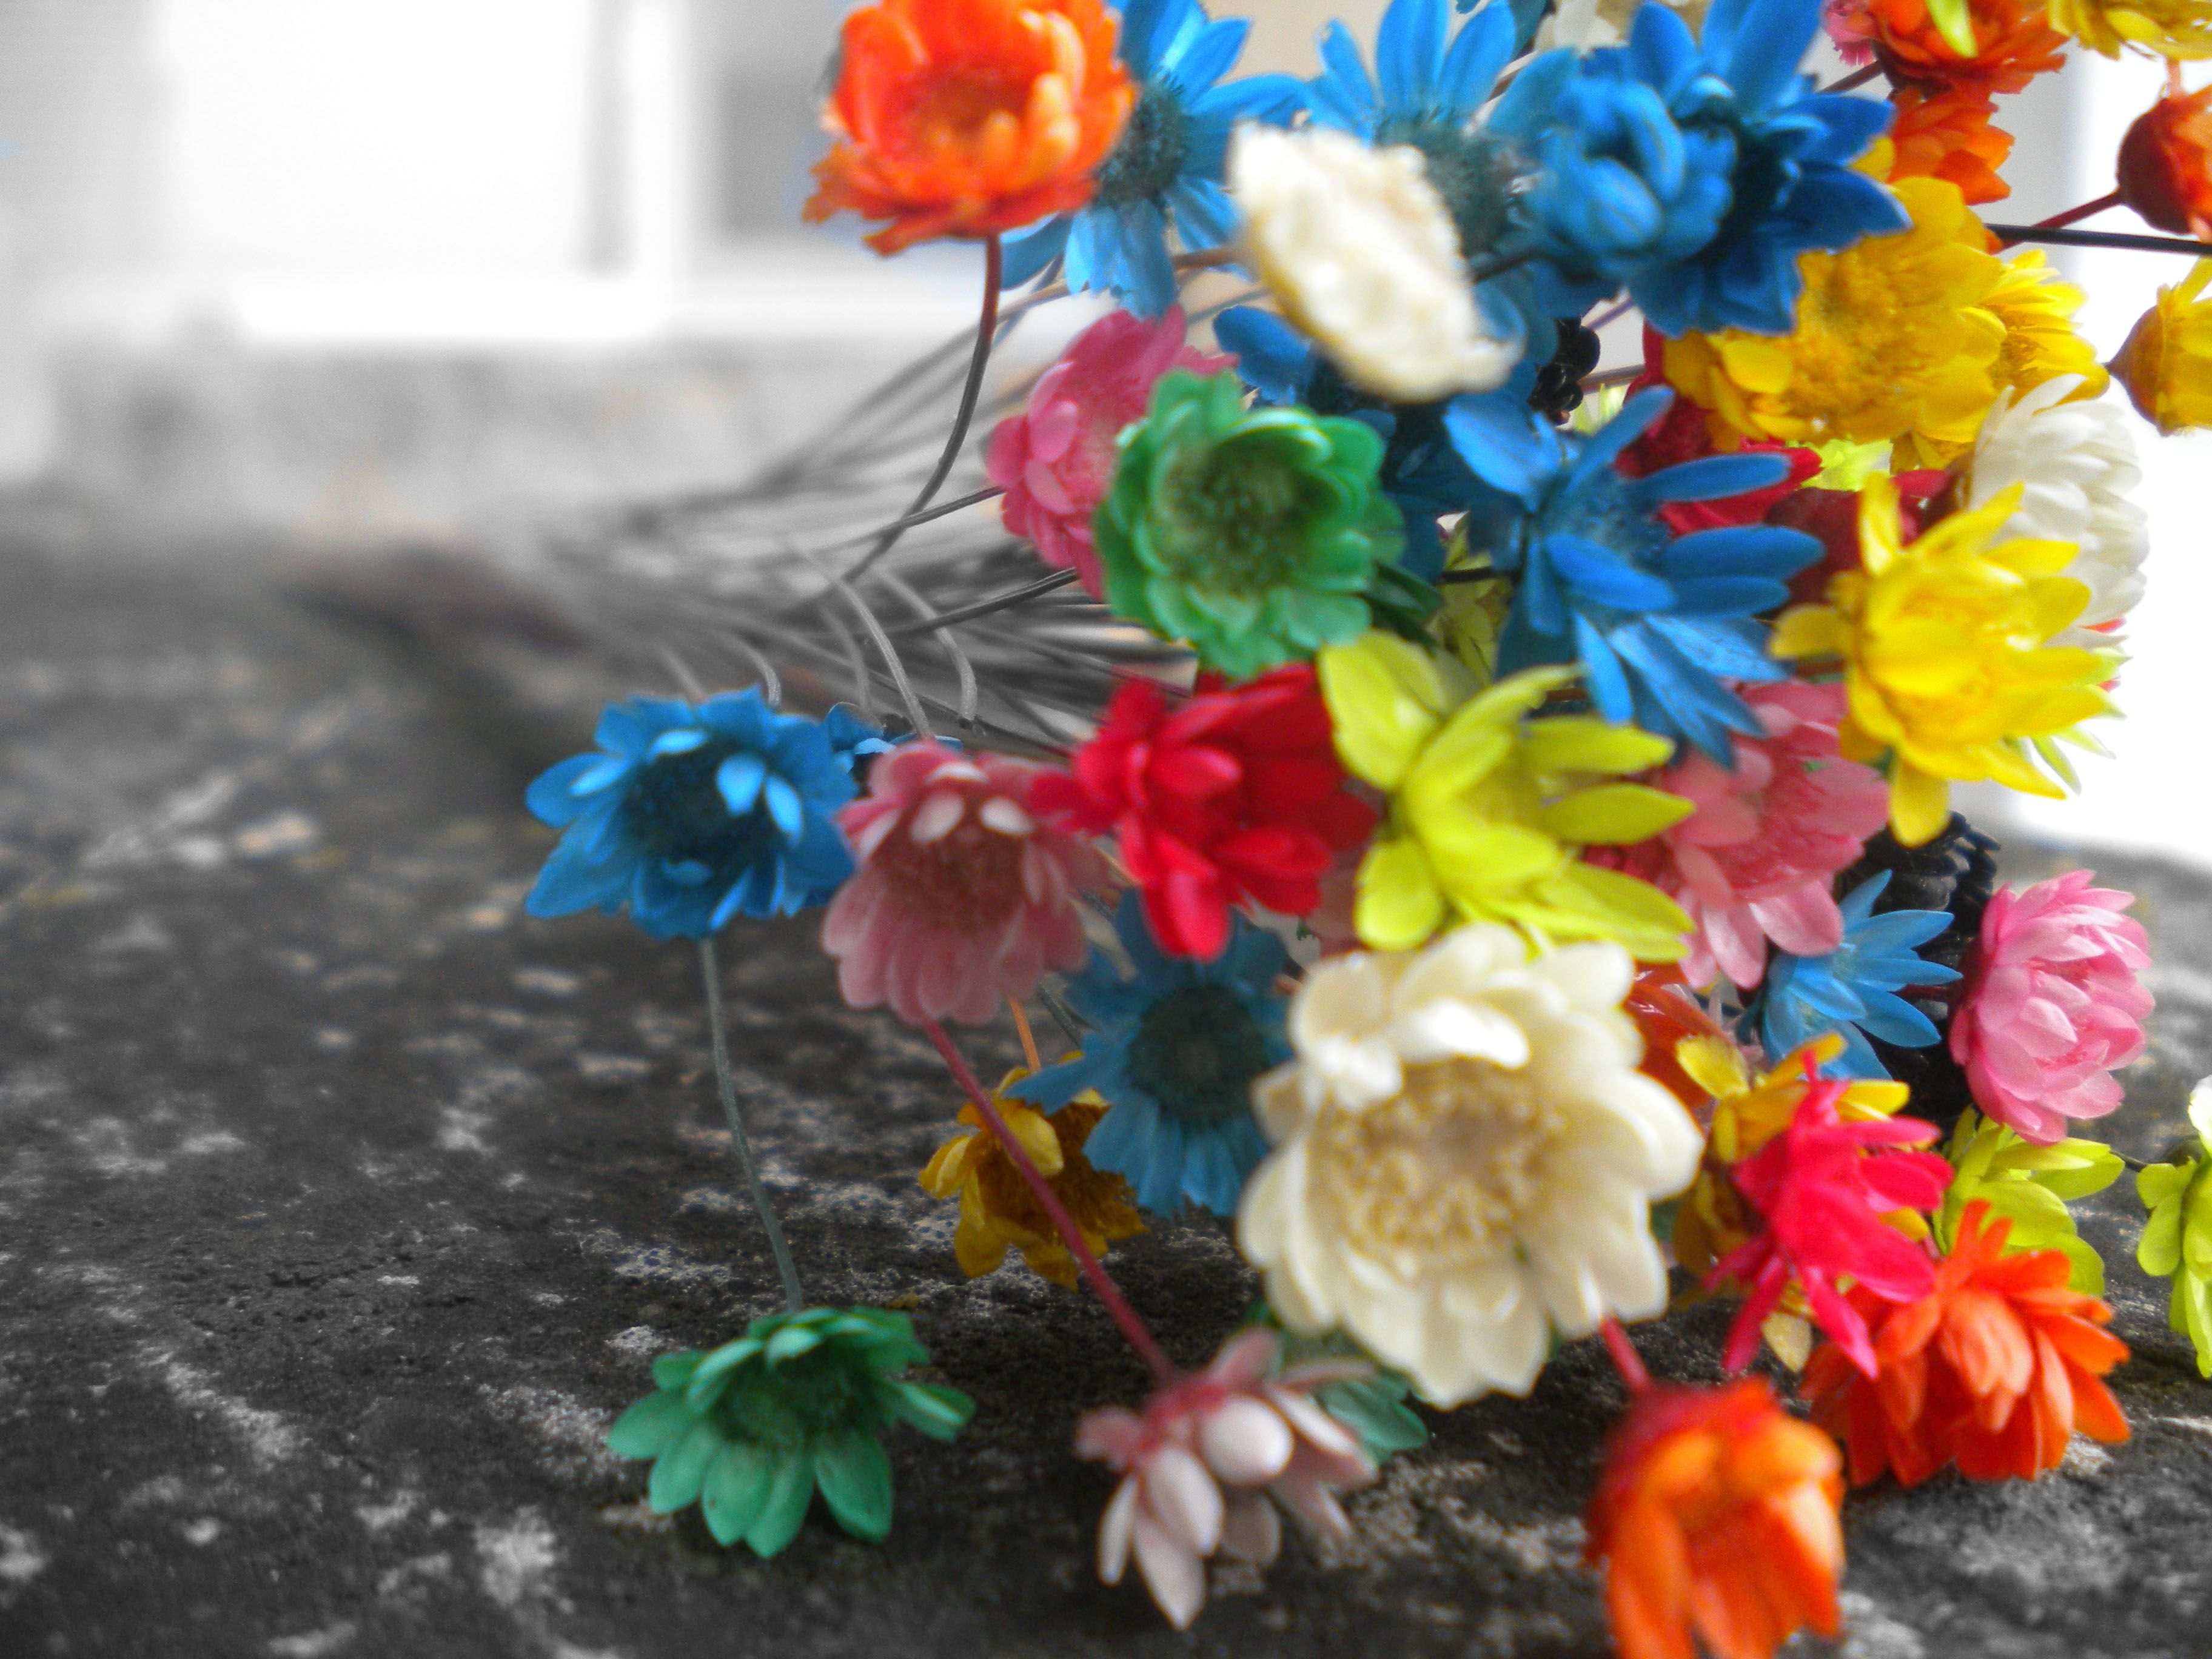 Colourful Flowers Your Popular Hd Wallpaper Id69915 Shared Via